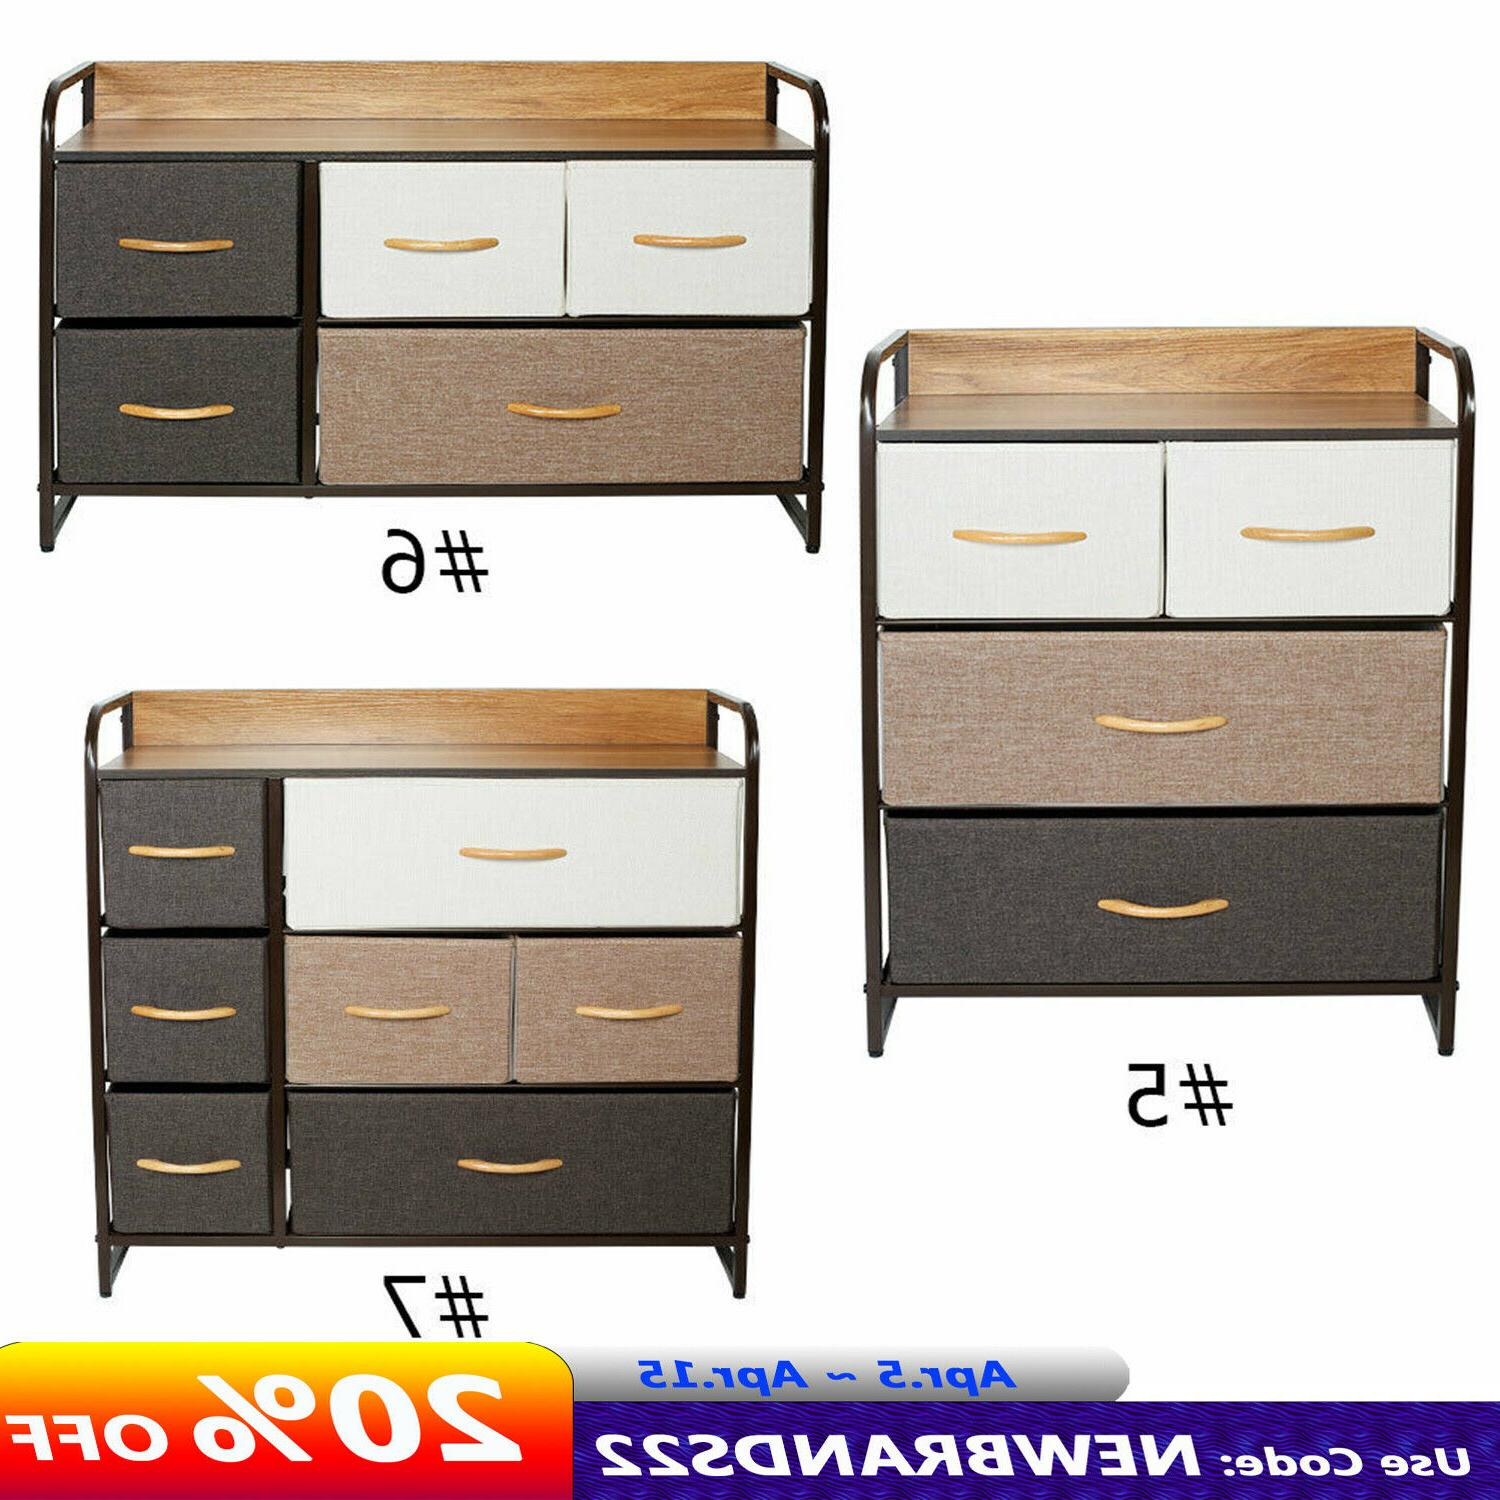 fabric dresser chest 3 4 5 drawers